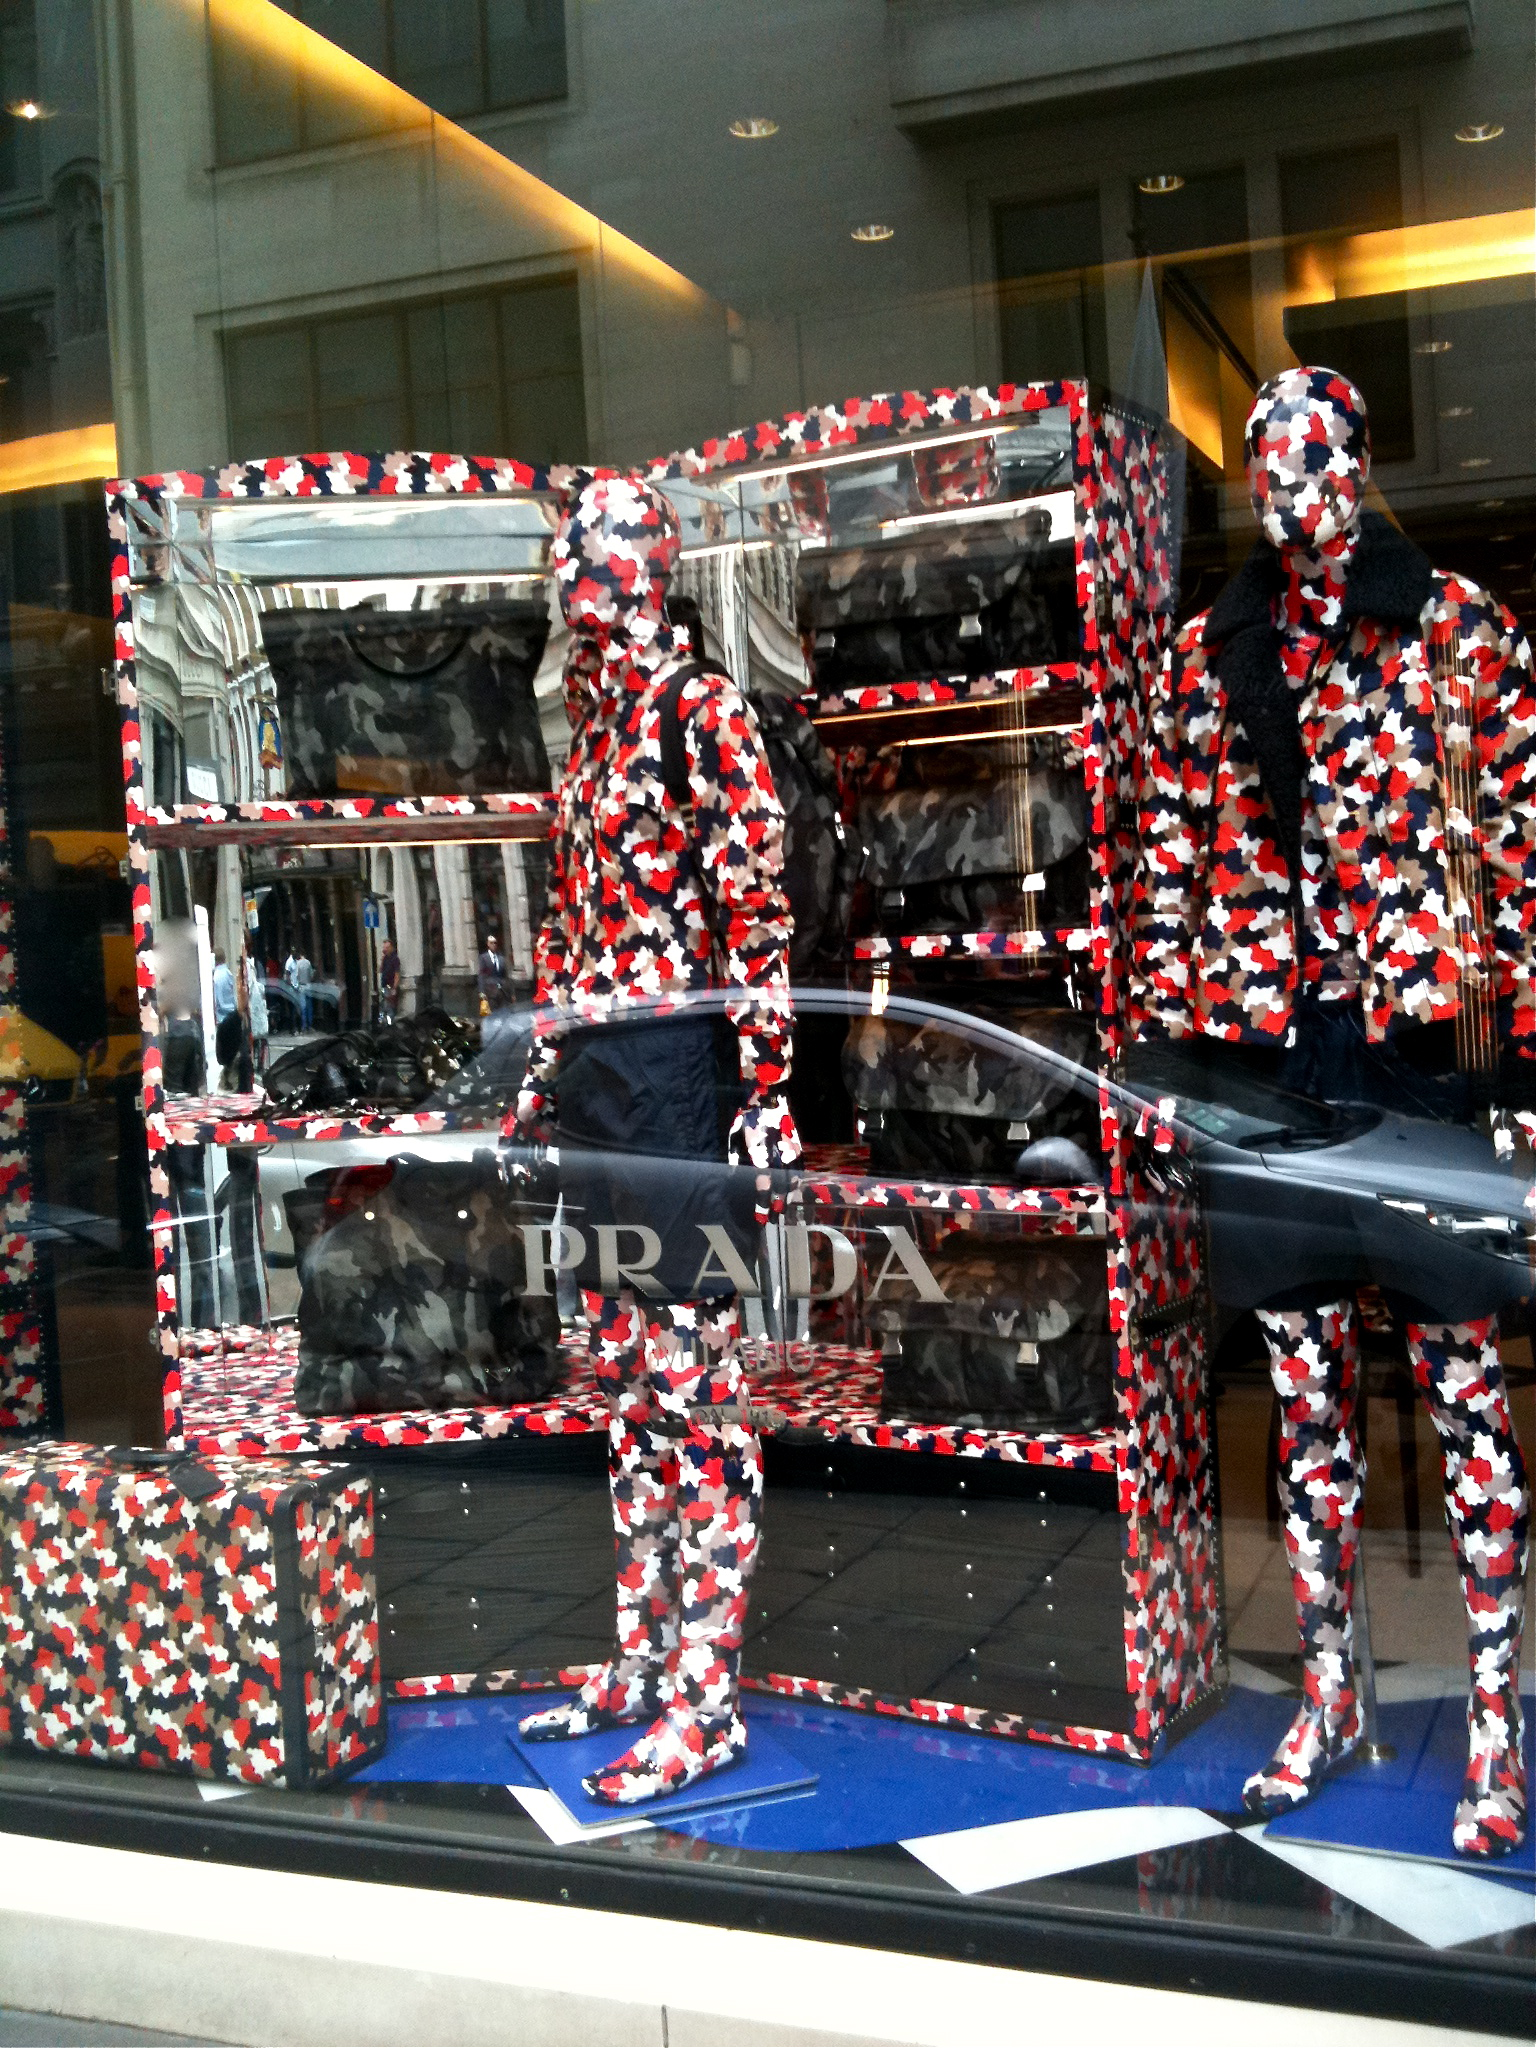 c2d706f2f5f8 Camouflage window display at Prada for winter 2010